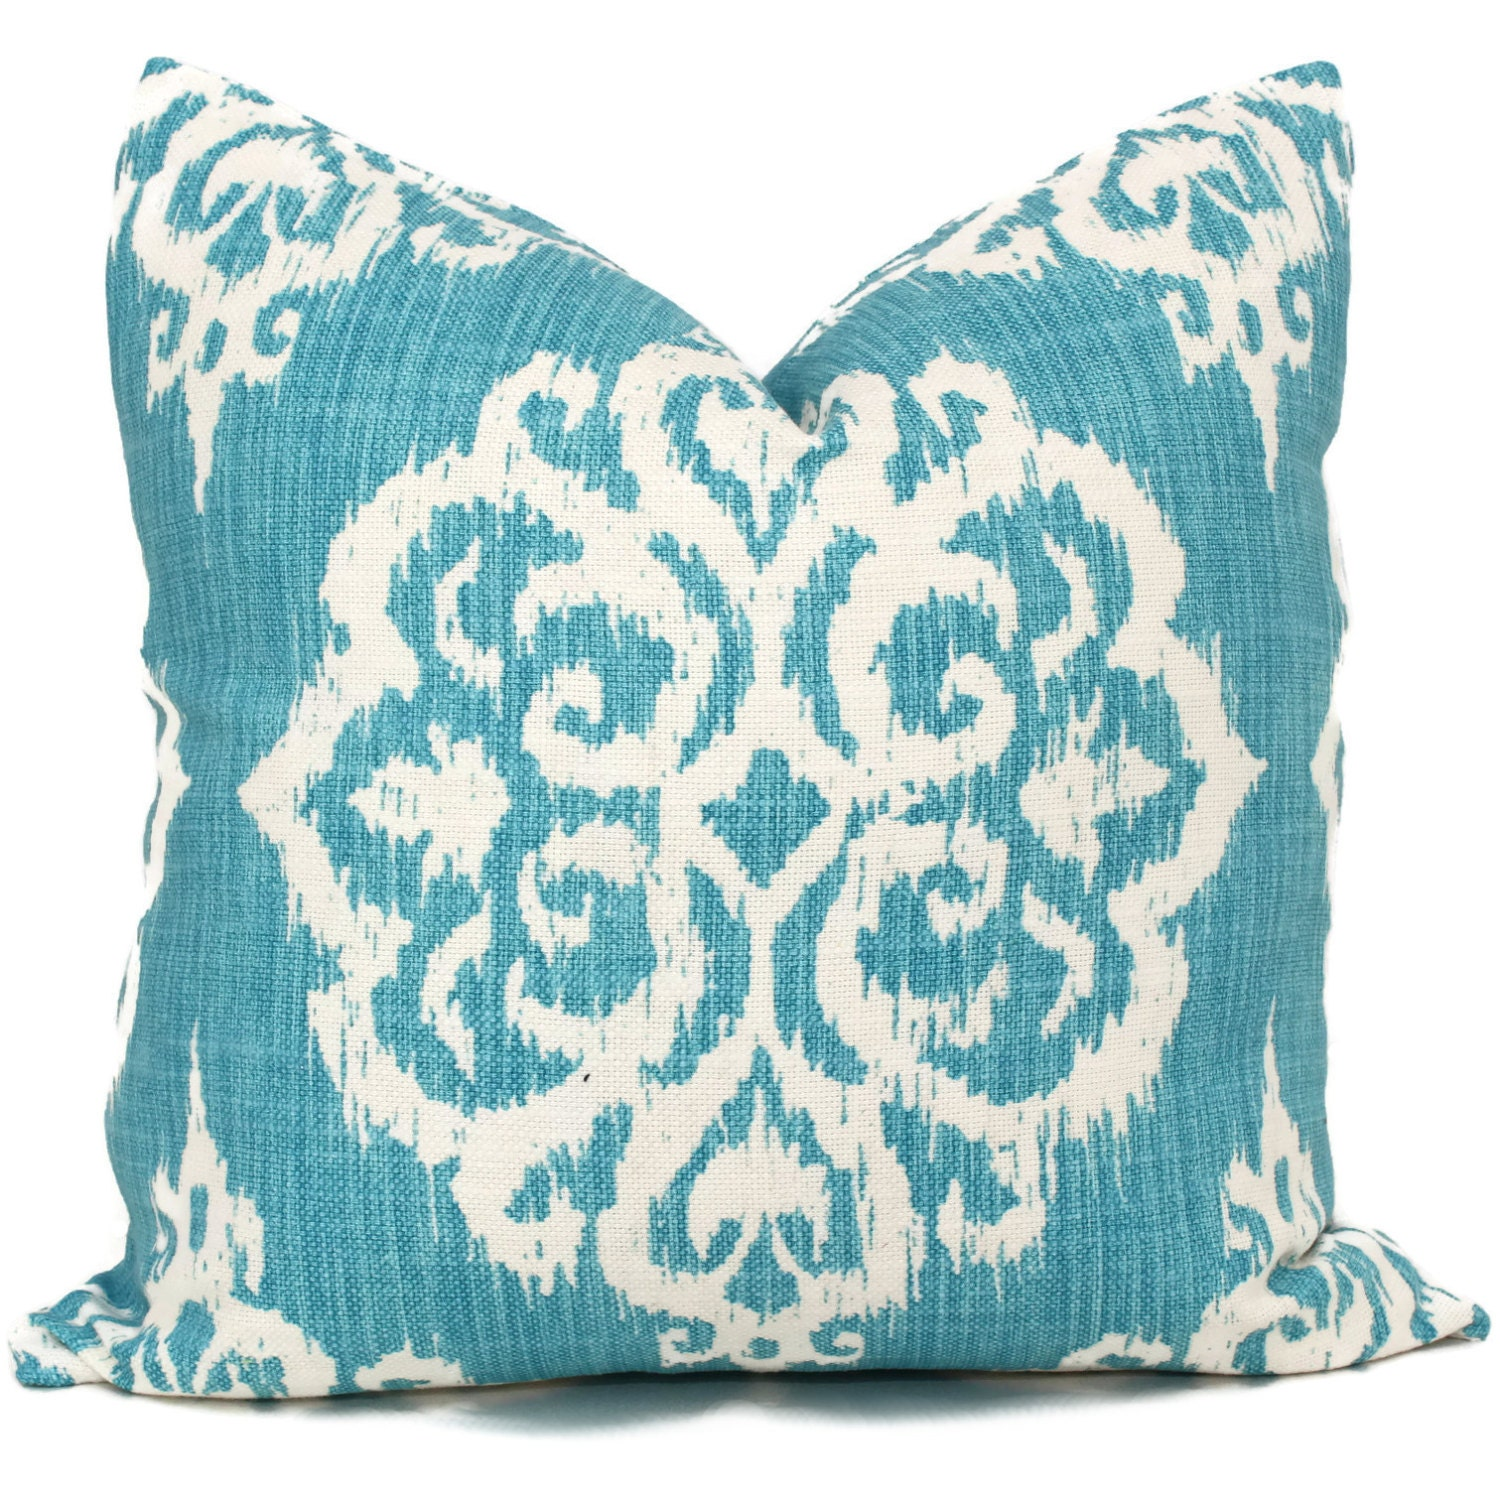 22x22 Decorative Pillows : Turquoise Suzani Decorative Pillow Cover 18x18 20x20 22x22